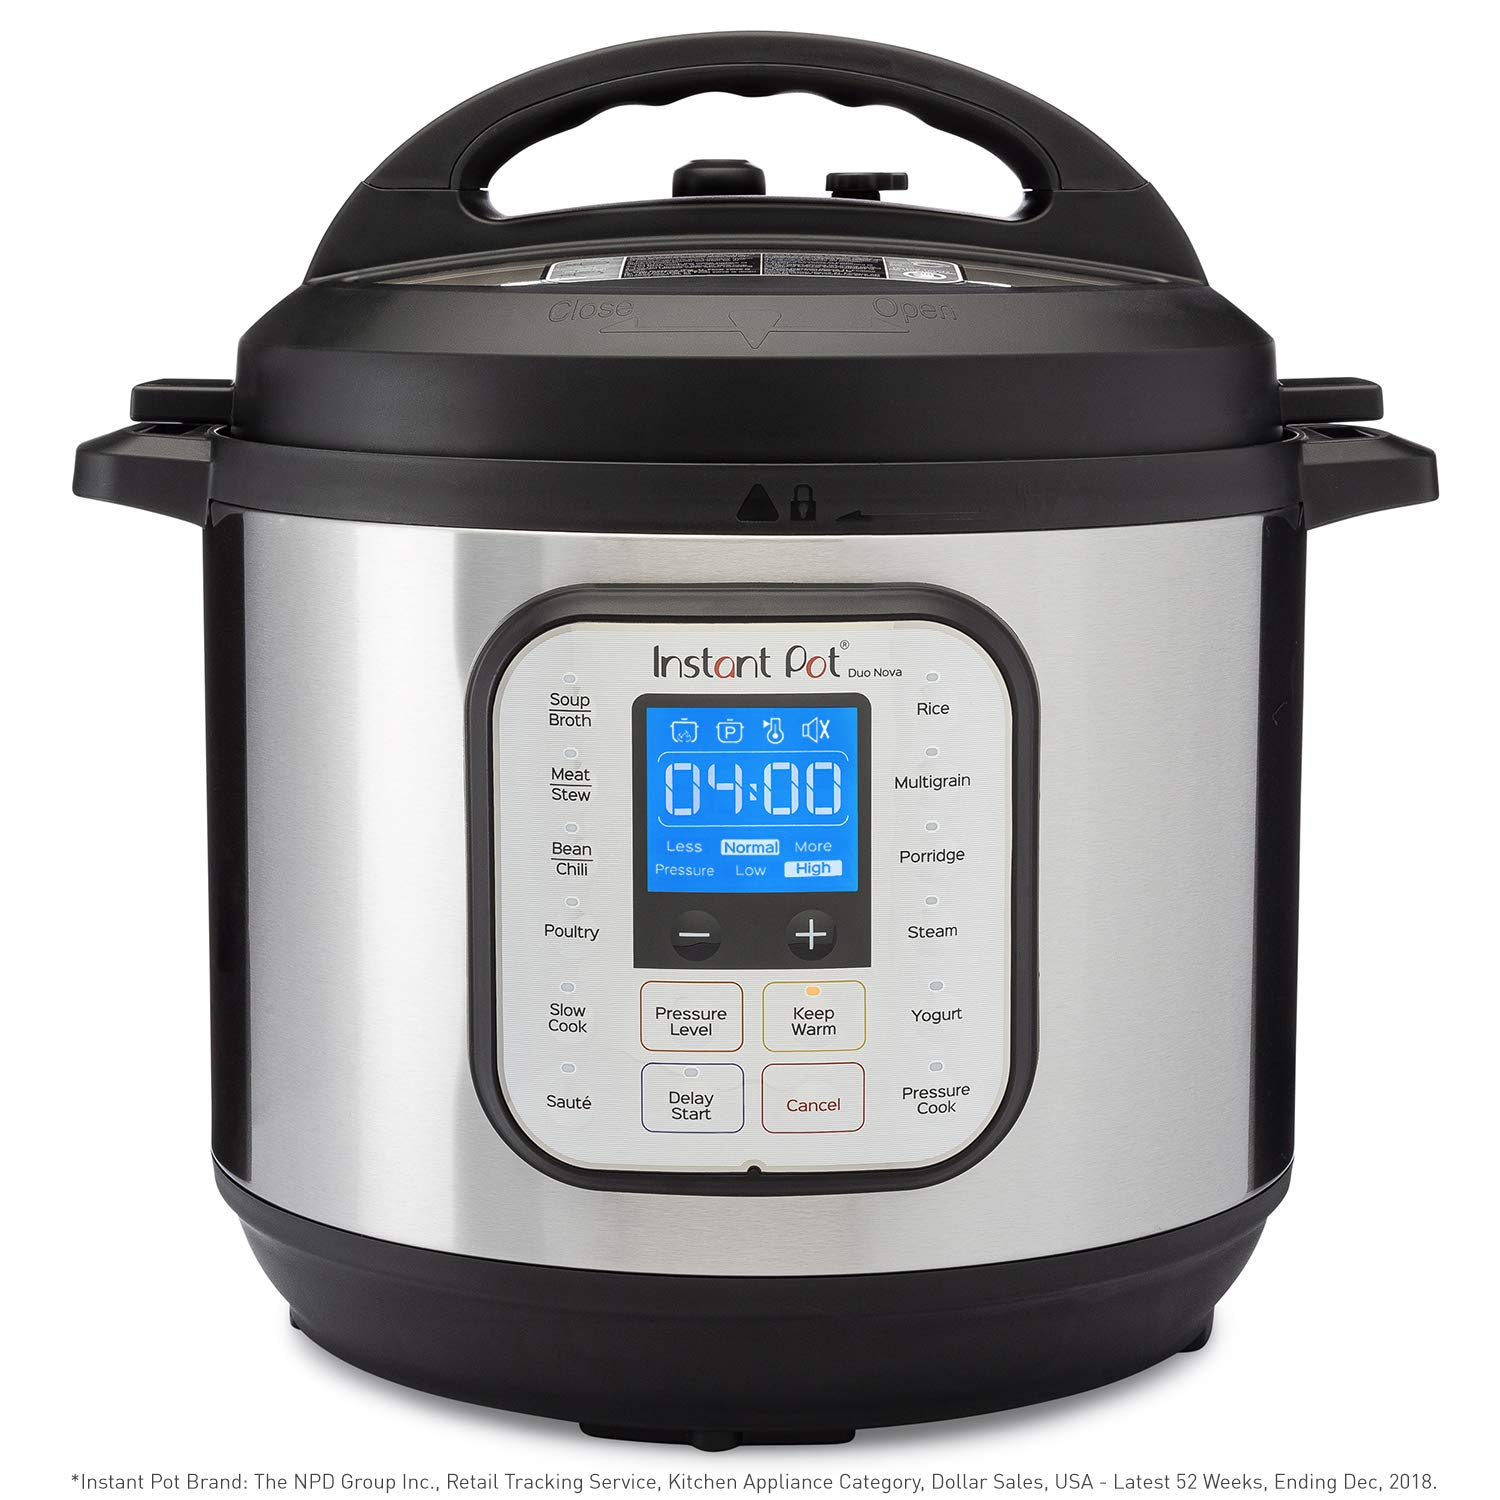 Instant Pot Duo Nova 7-in-1 Electric Pressure Cooker, Slow Cooker, Rice Cooker, Steamer, Saute, Yogurt Maker, and Warmer|8 Quart|Easy-Seal Lid|14 One-Touch Programs